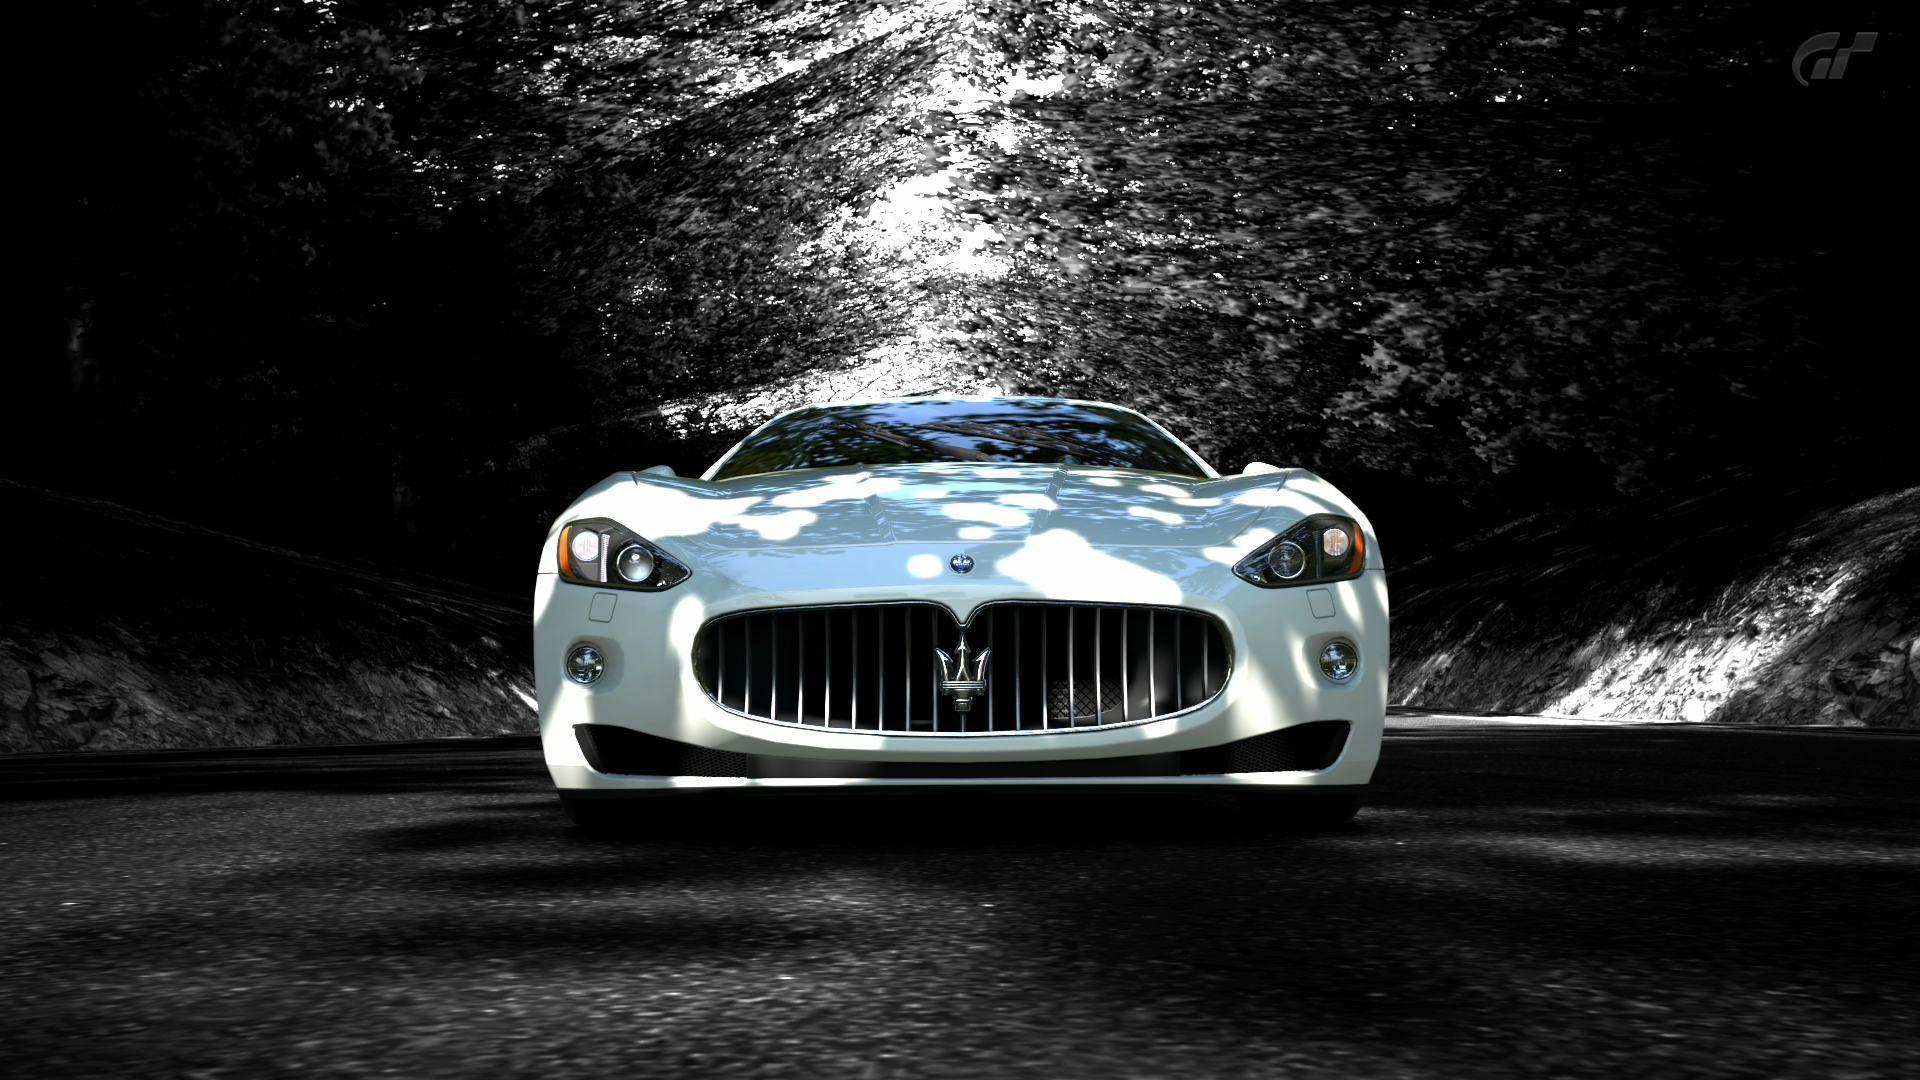 White-Maserati-Granturismo-HD-Wallpaper.jpg (1920×1080 ...